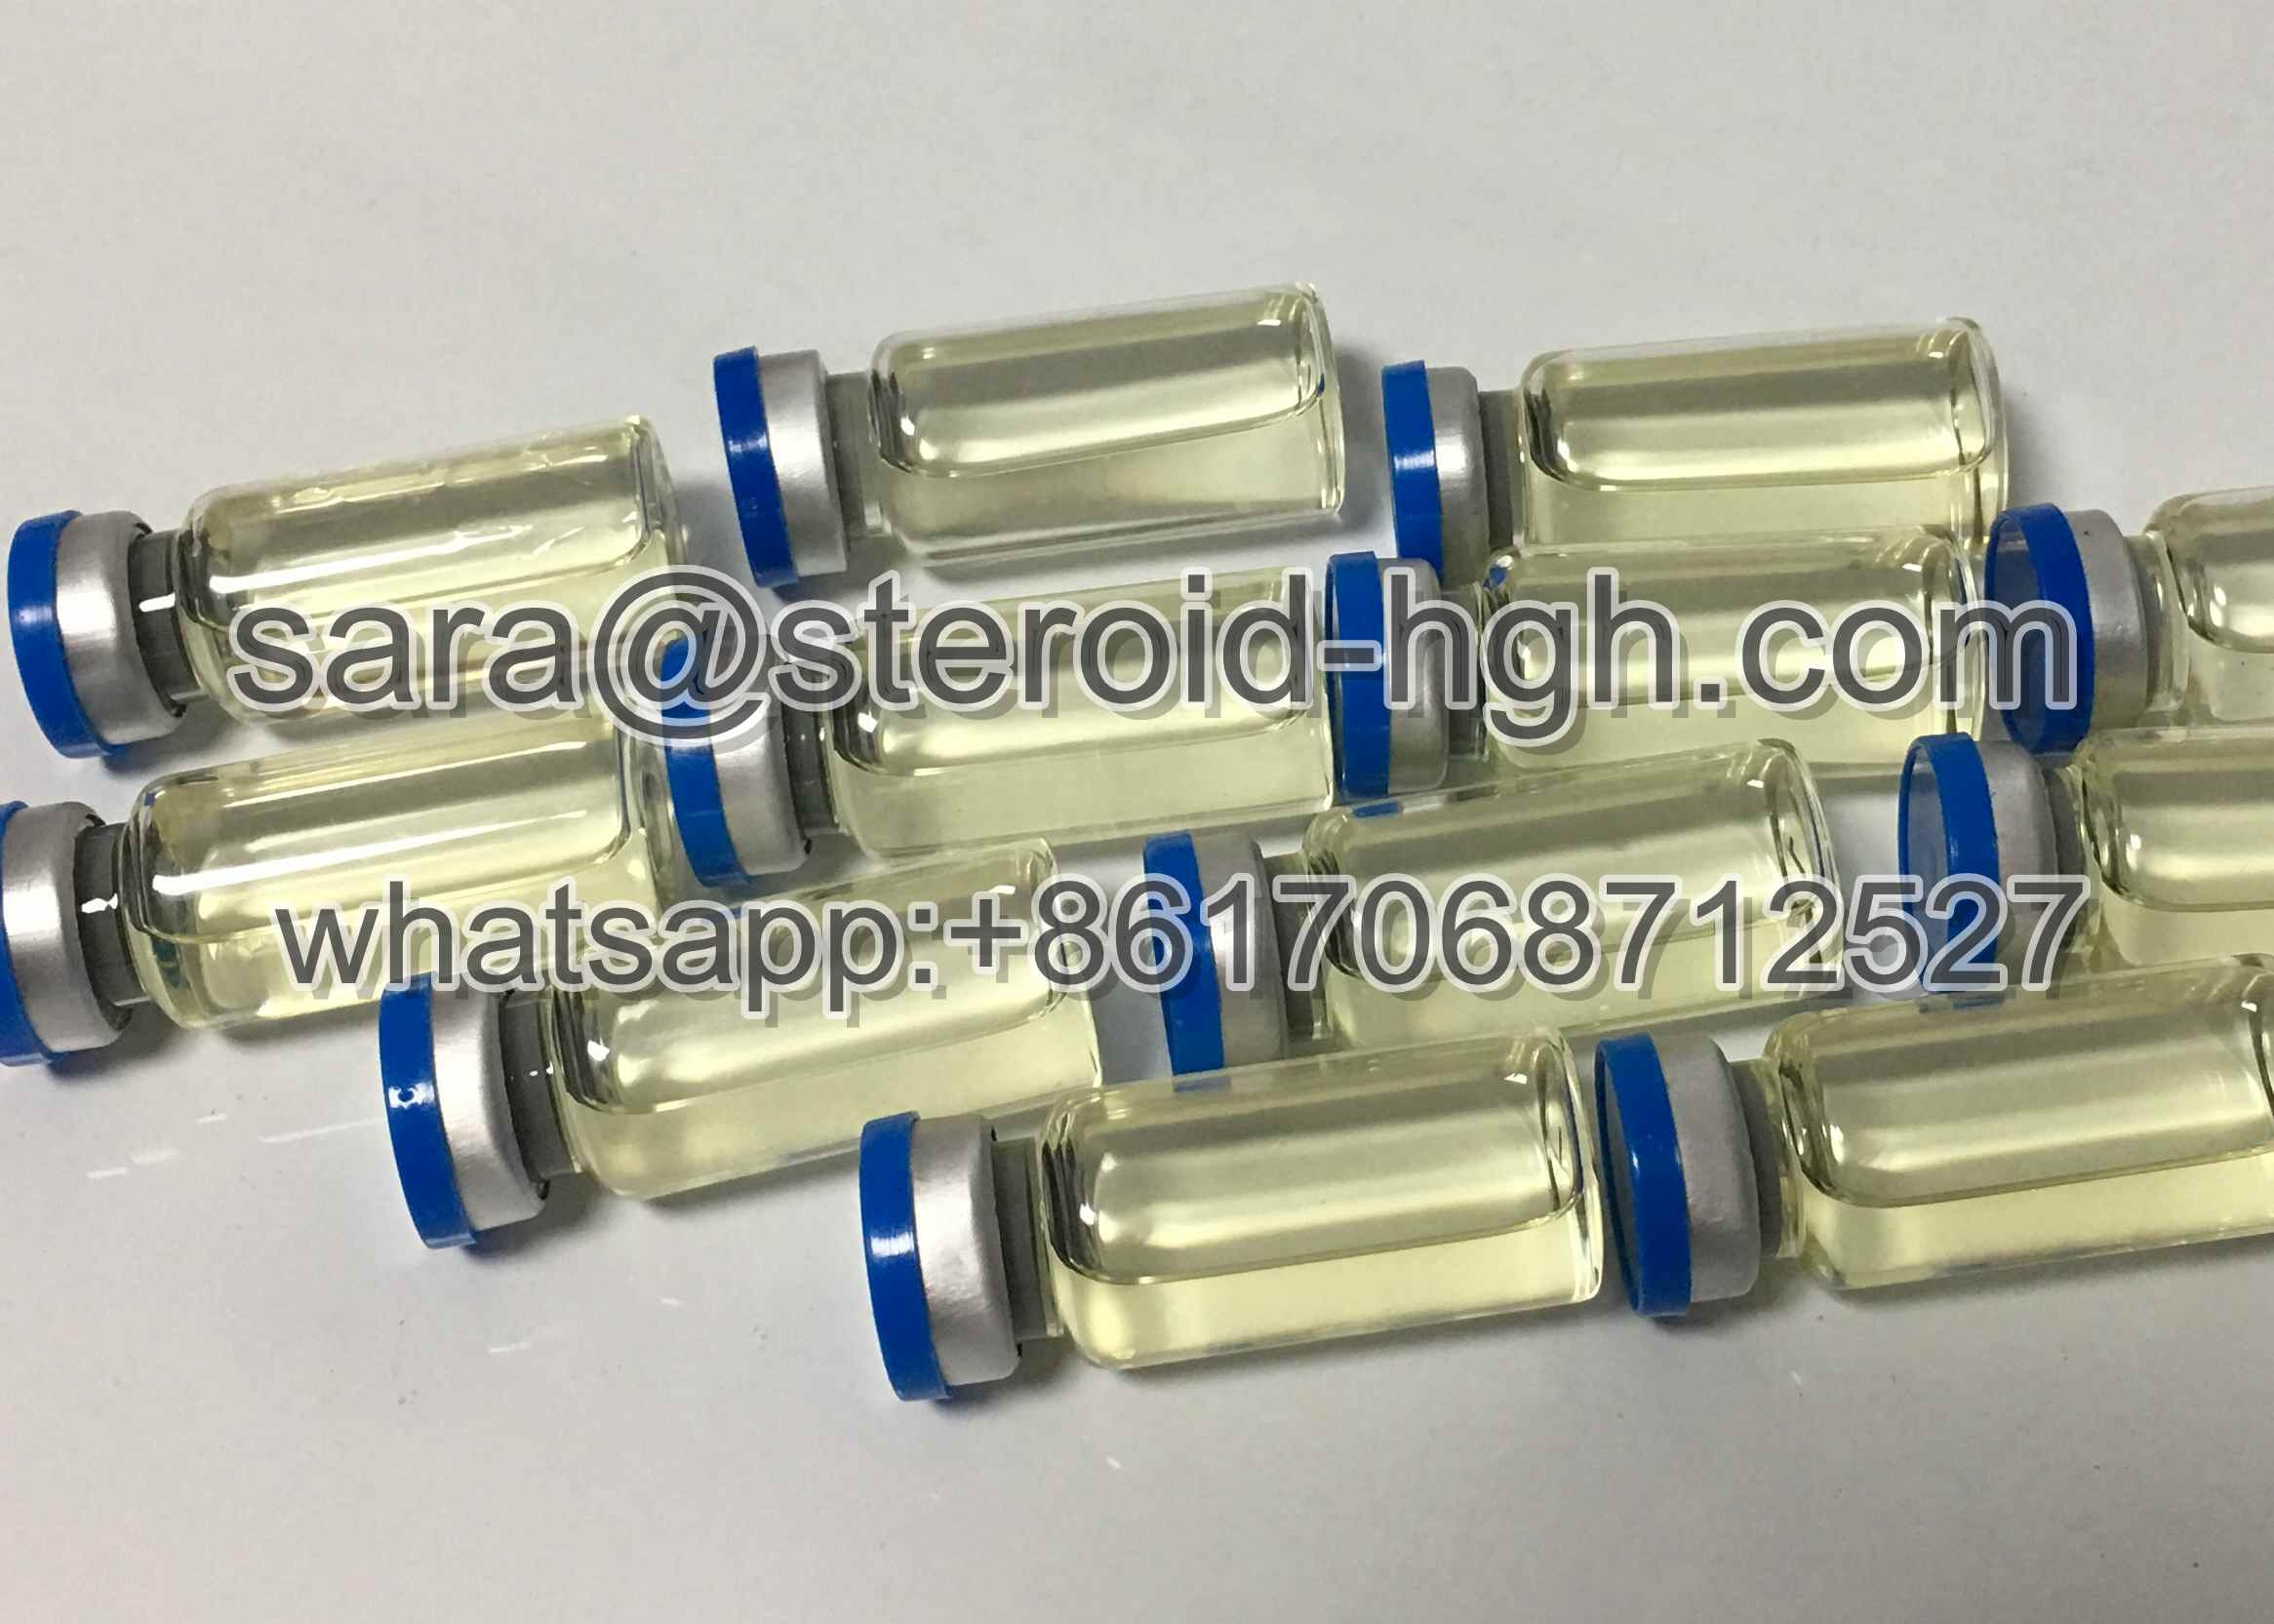 Testosterone Cypionate Oil Liquids